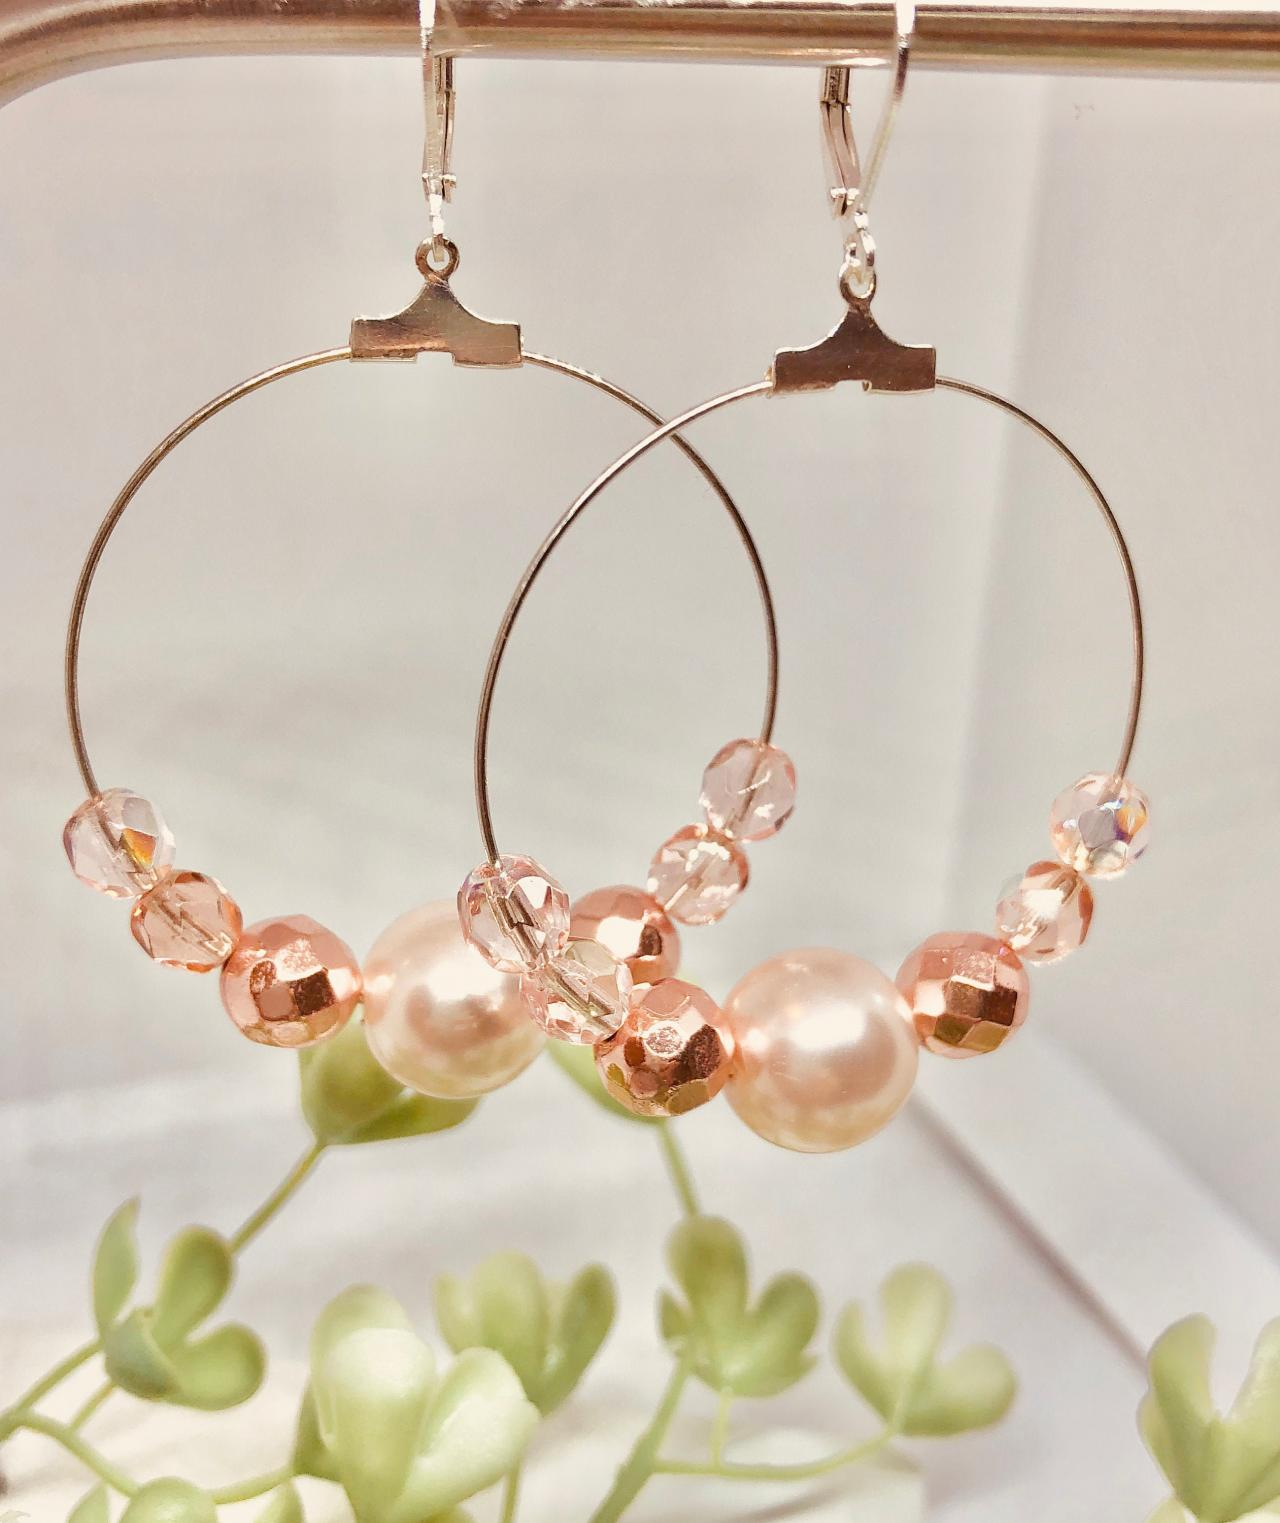 Large Dangle Hoop Earrings, Large Pearl, Pink Faceted Beads, Shades of Pink, Lever-back Hooks, Hoop Dangle Earrings